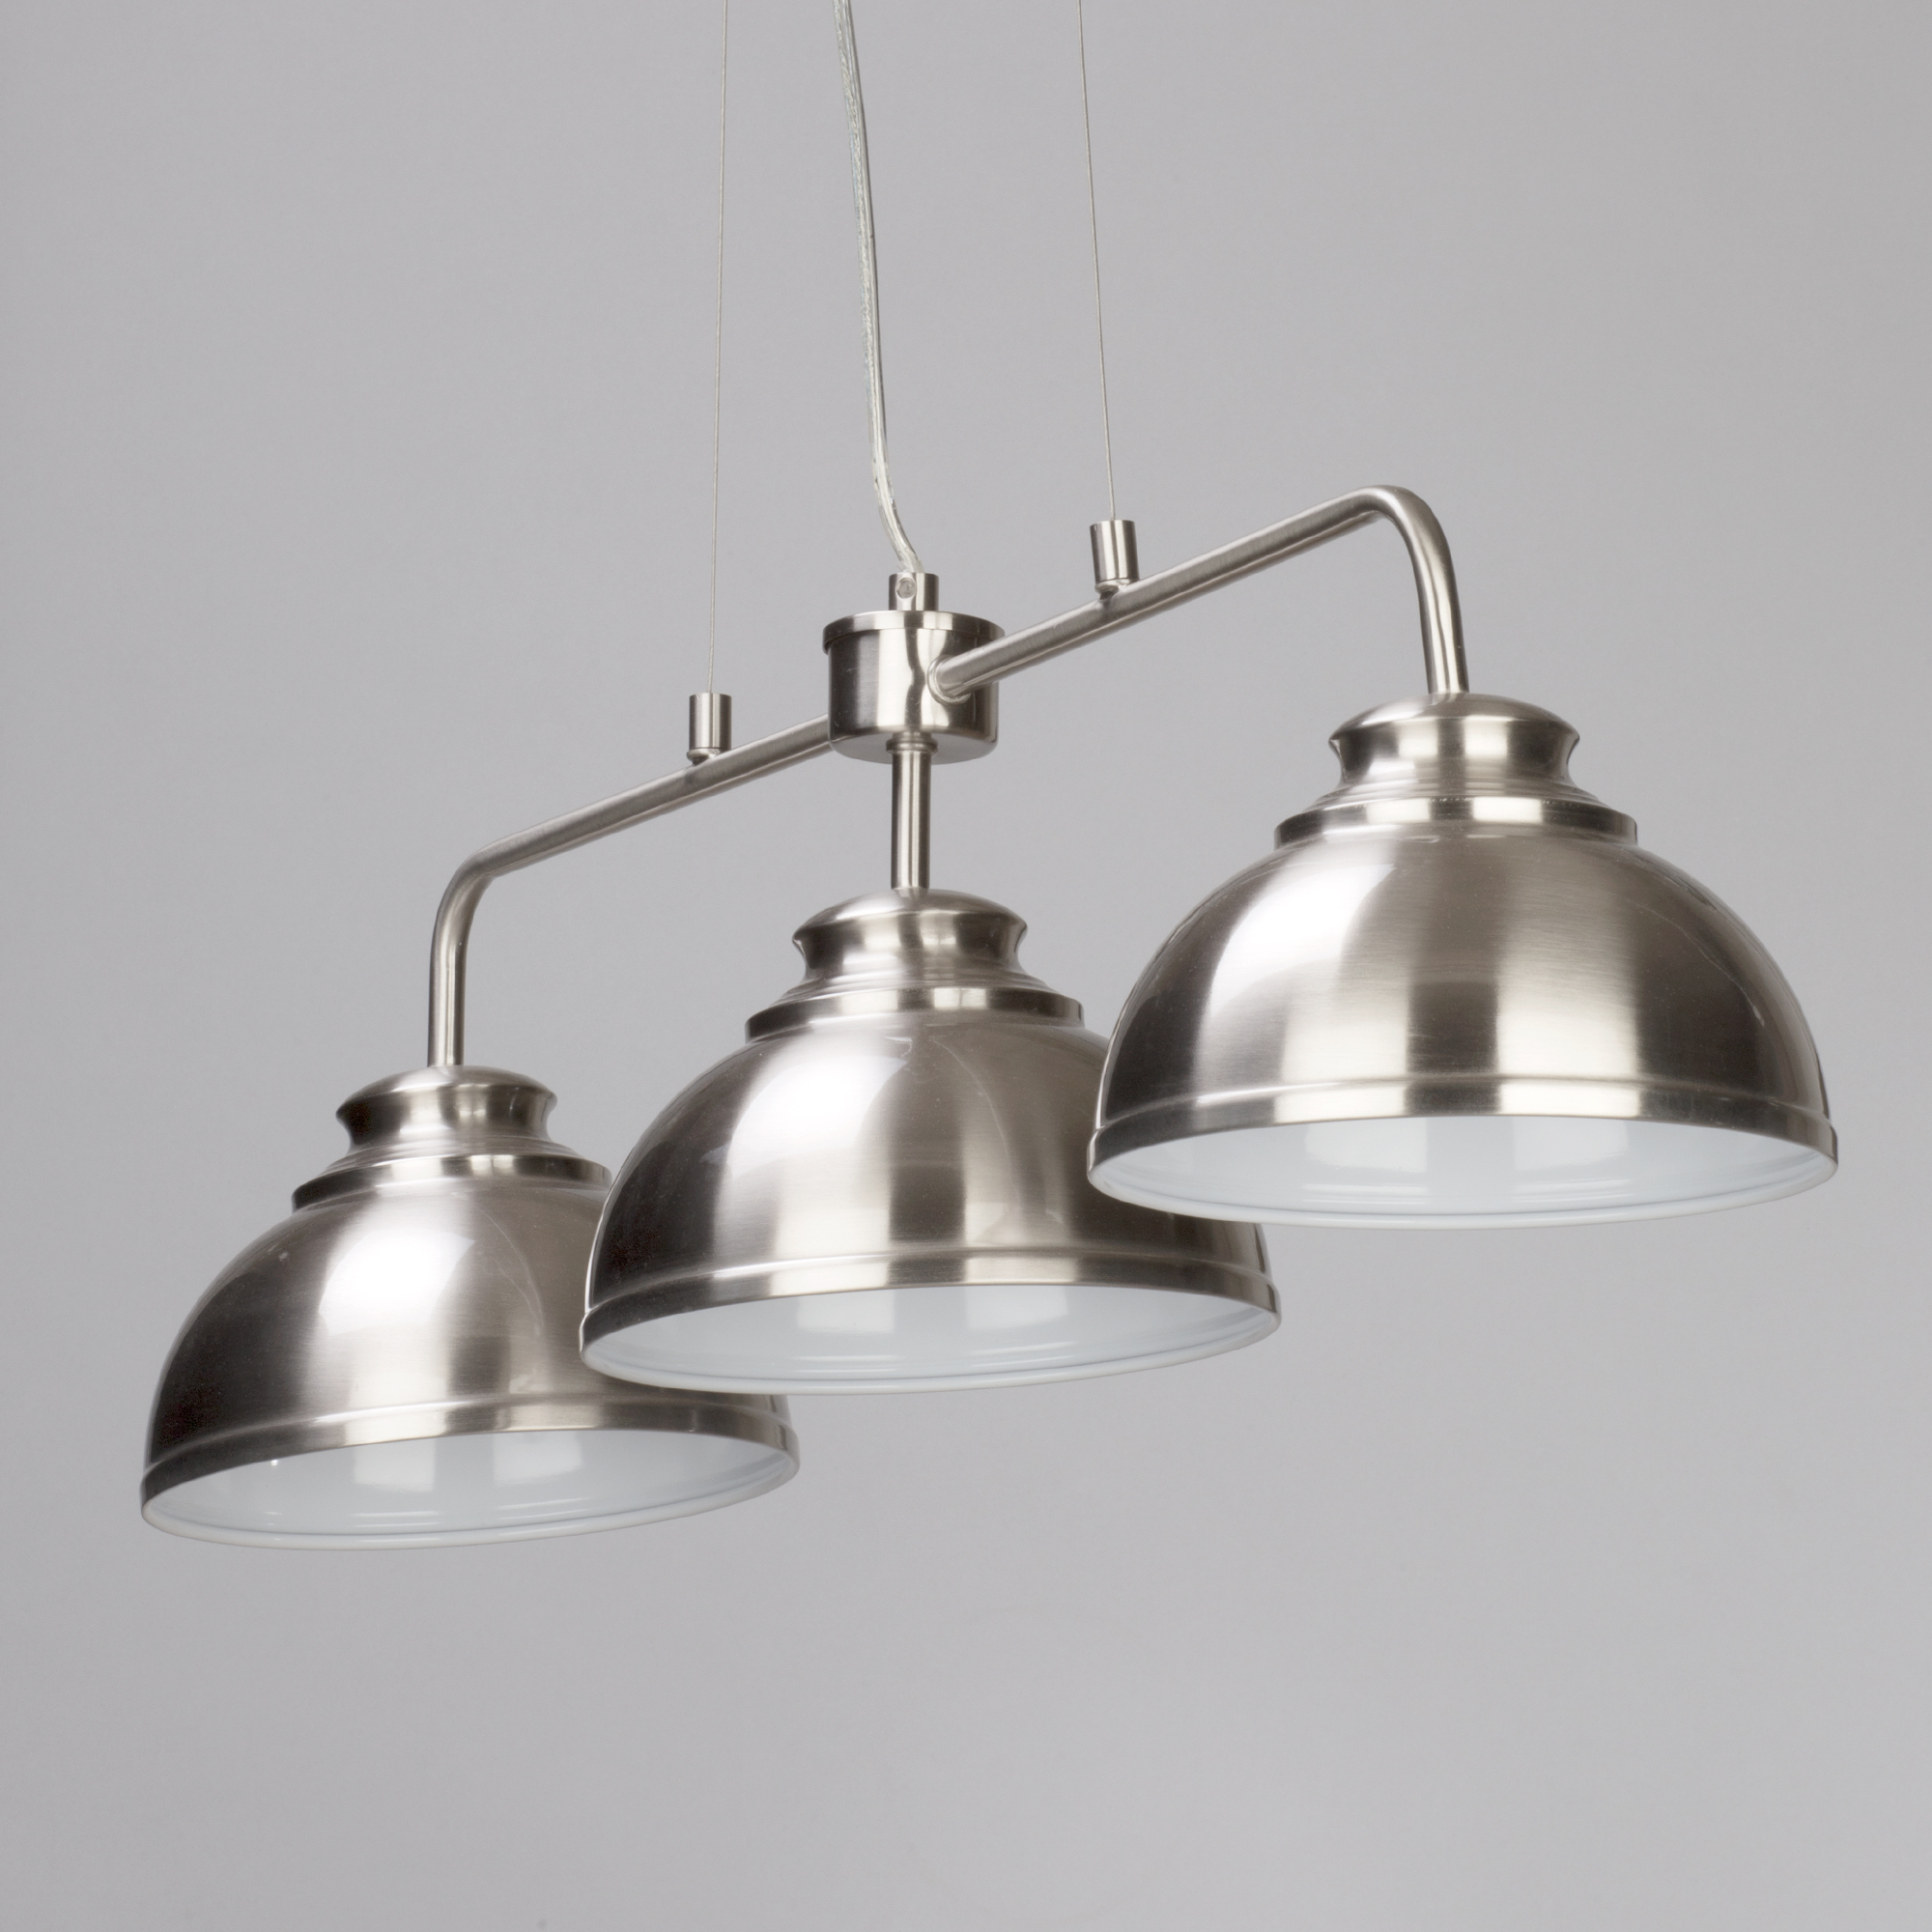 3 Bar Pendant Light Hanging Chrome Effect 3 Way Mounted: 3 Way Ceiling Pendant Bar Hanging Ceiling Fitting In Satin